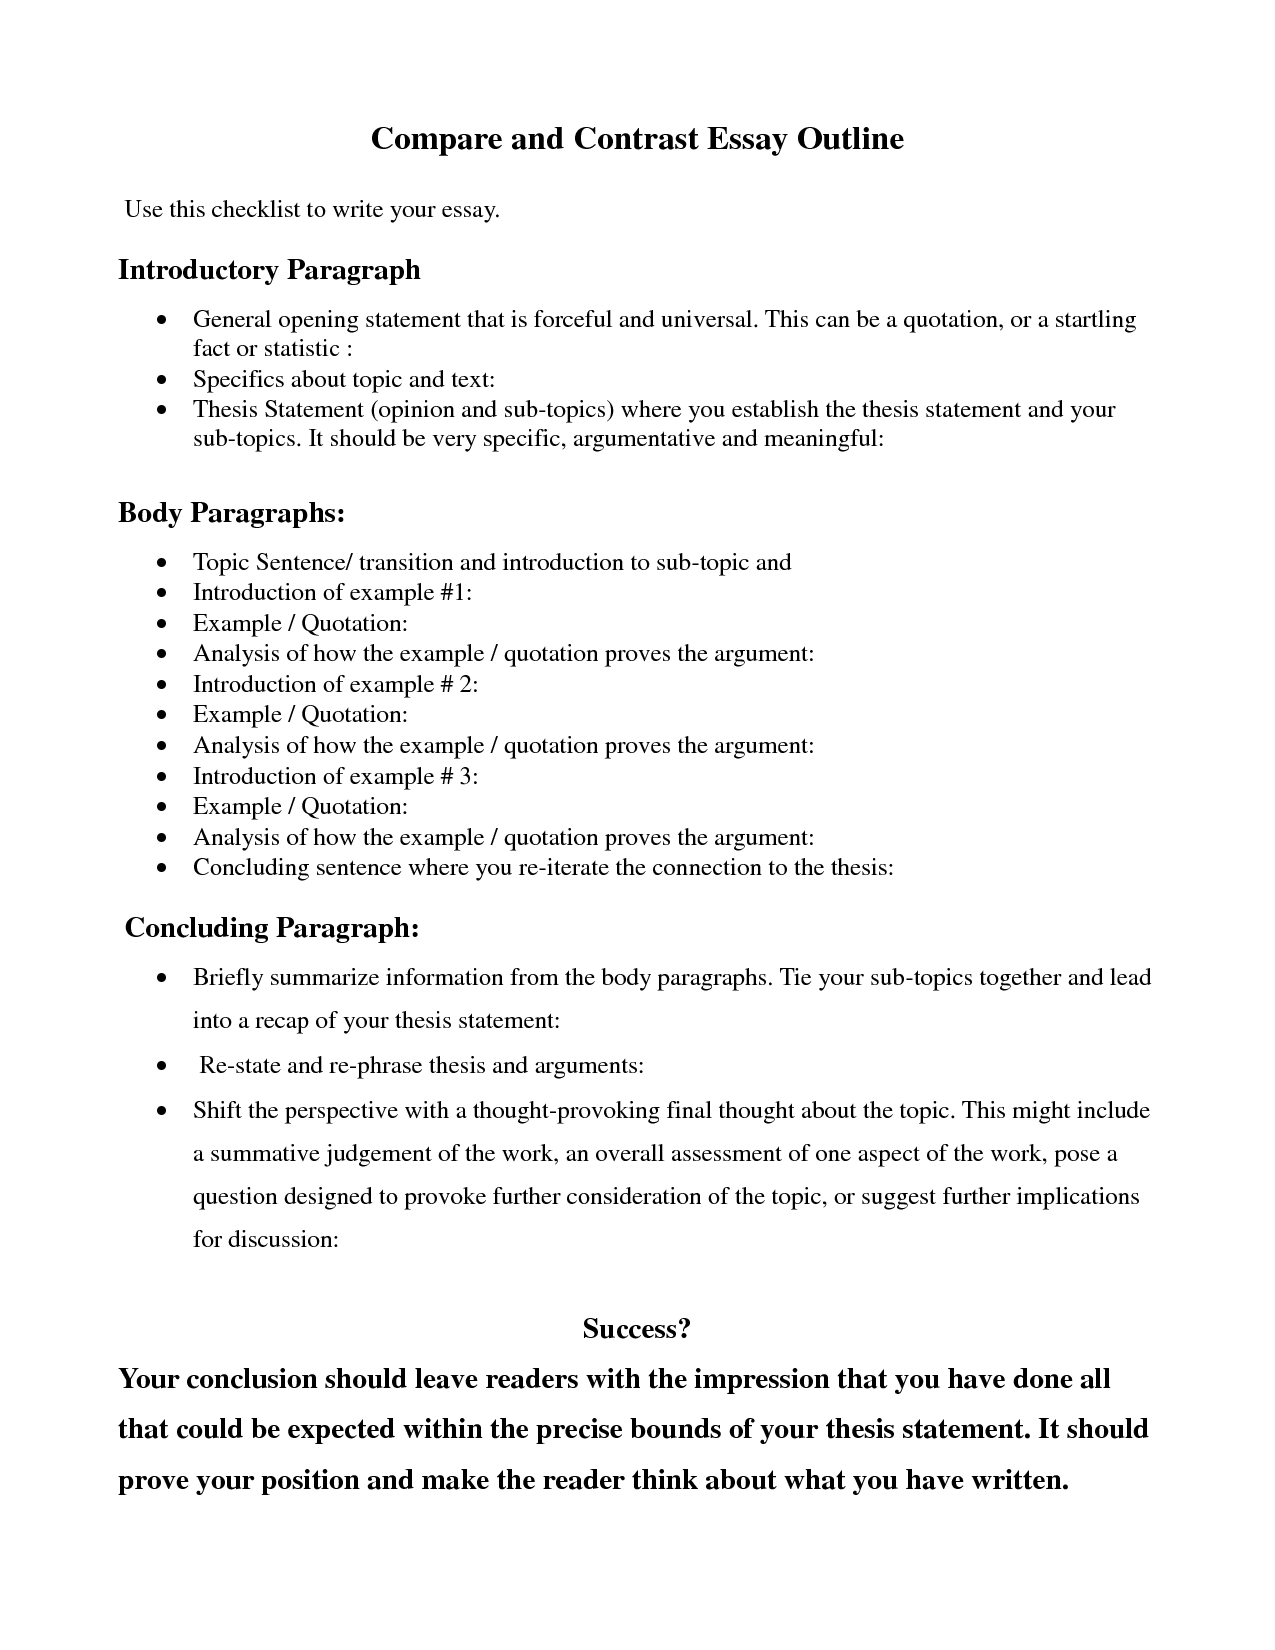 001 Example Essay Compare And Sensational Contrast Sample Introduction For Comparison Point-by-point Of An Paragraph Full